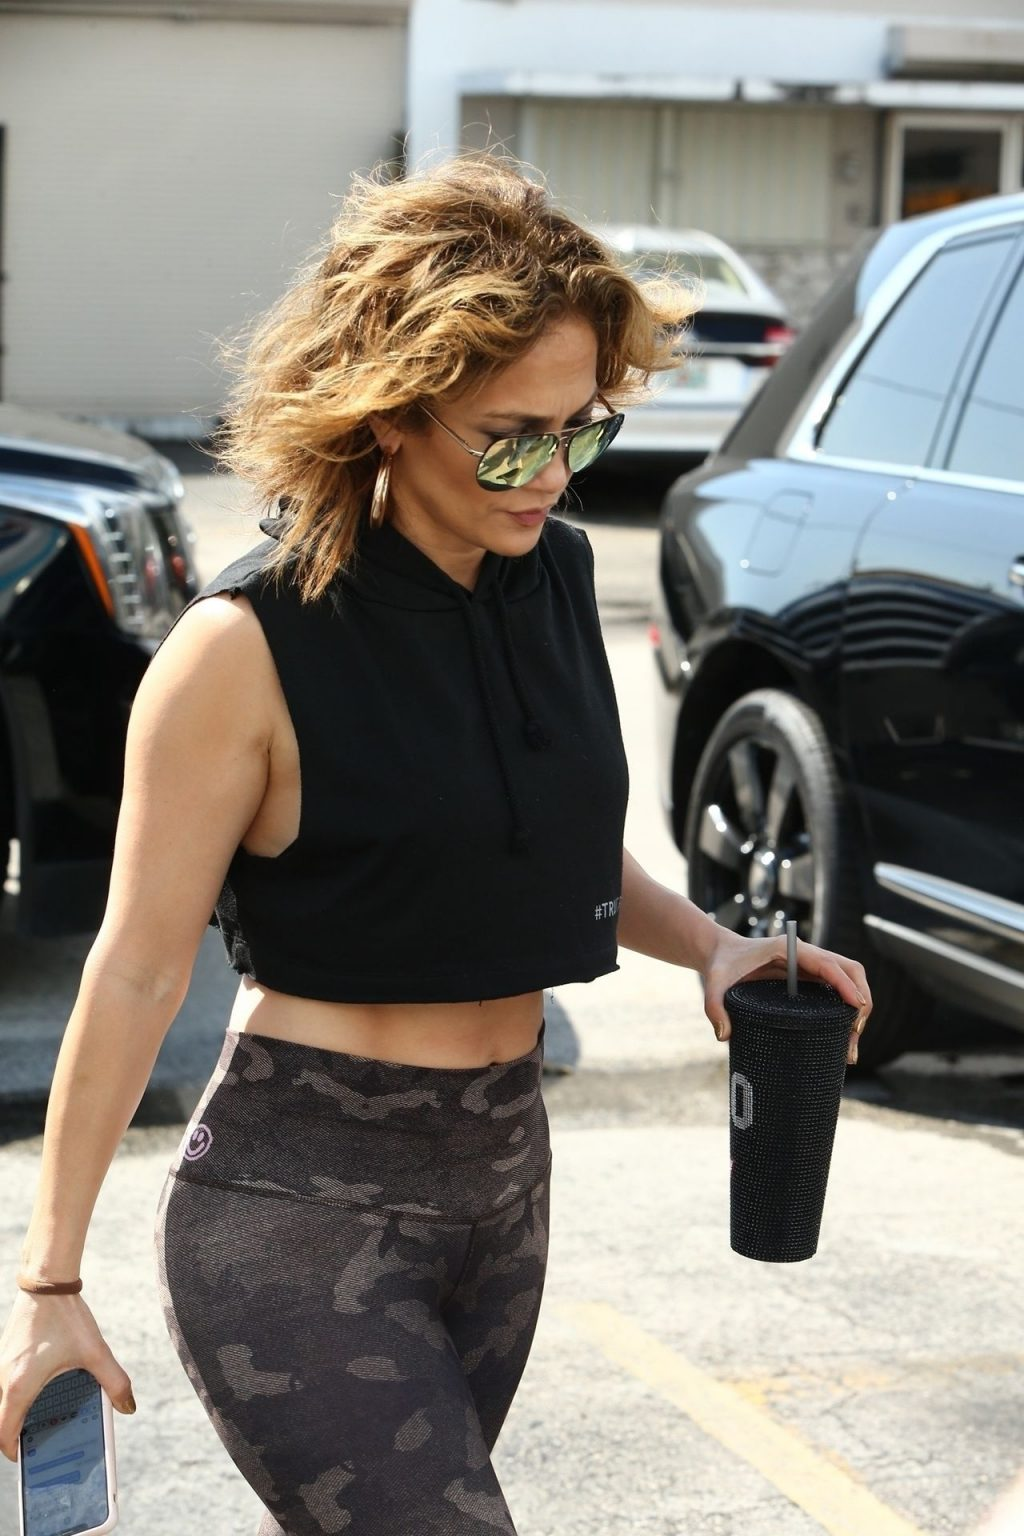 Jennifer Lopez Sexy The Fappening Blog 27 1024x1536 - Jennifer Lopez Shows That Rock Hard Abs Don't Just Happen as She Dutifully Hits the Gym in Miami (48 Photos)